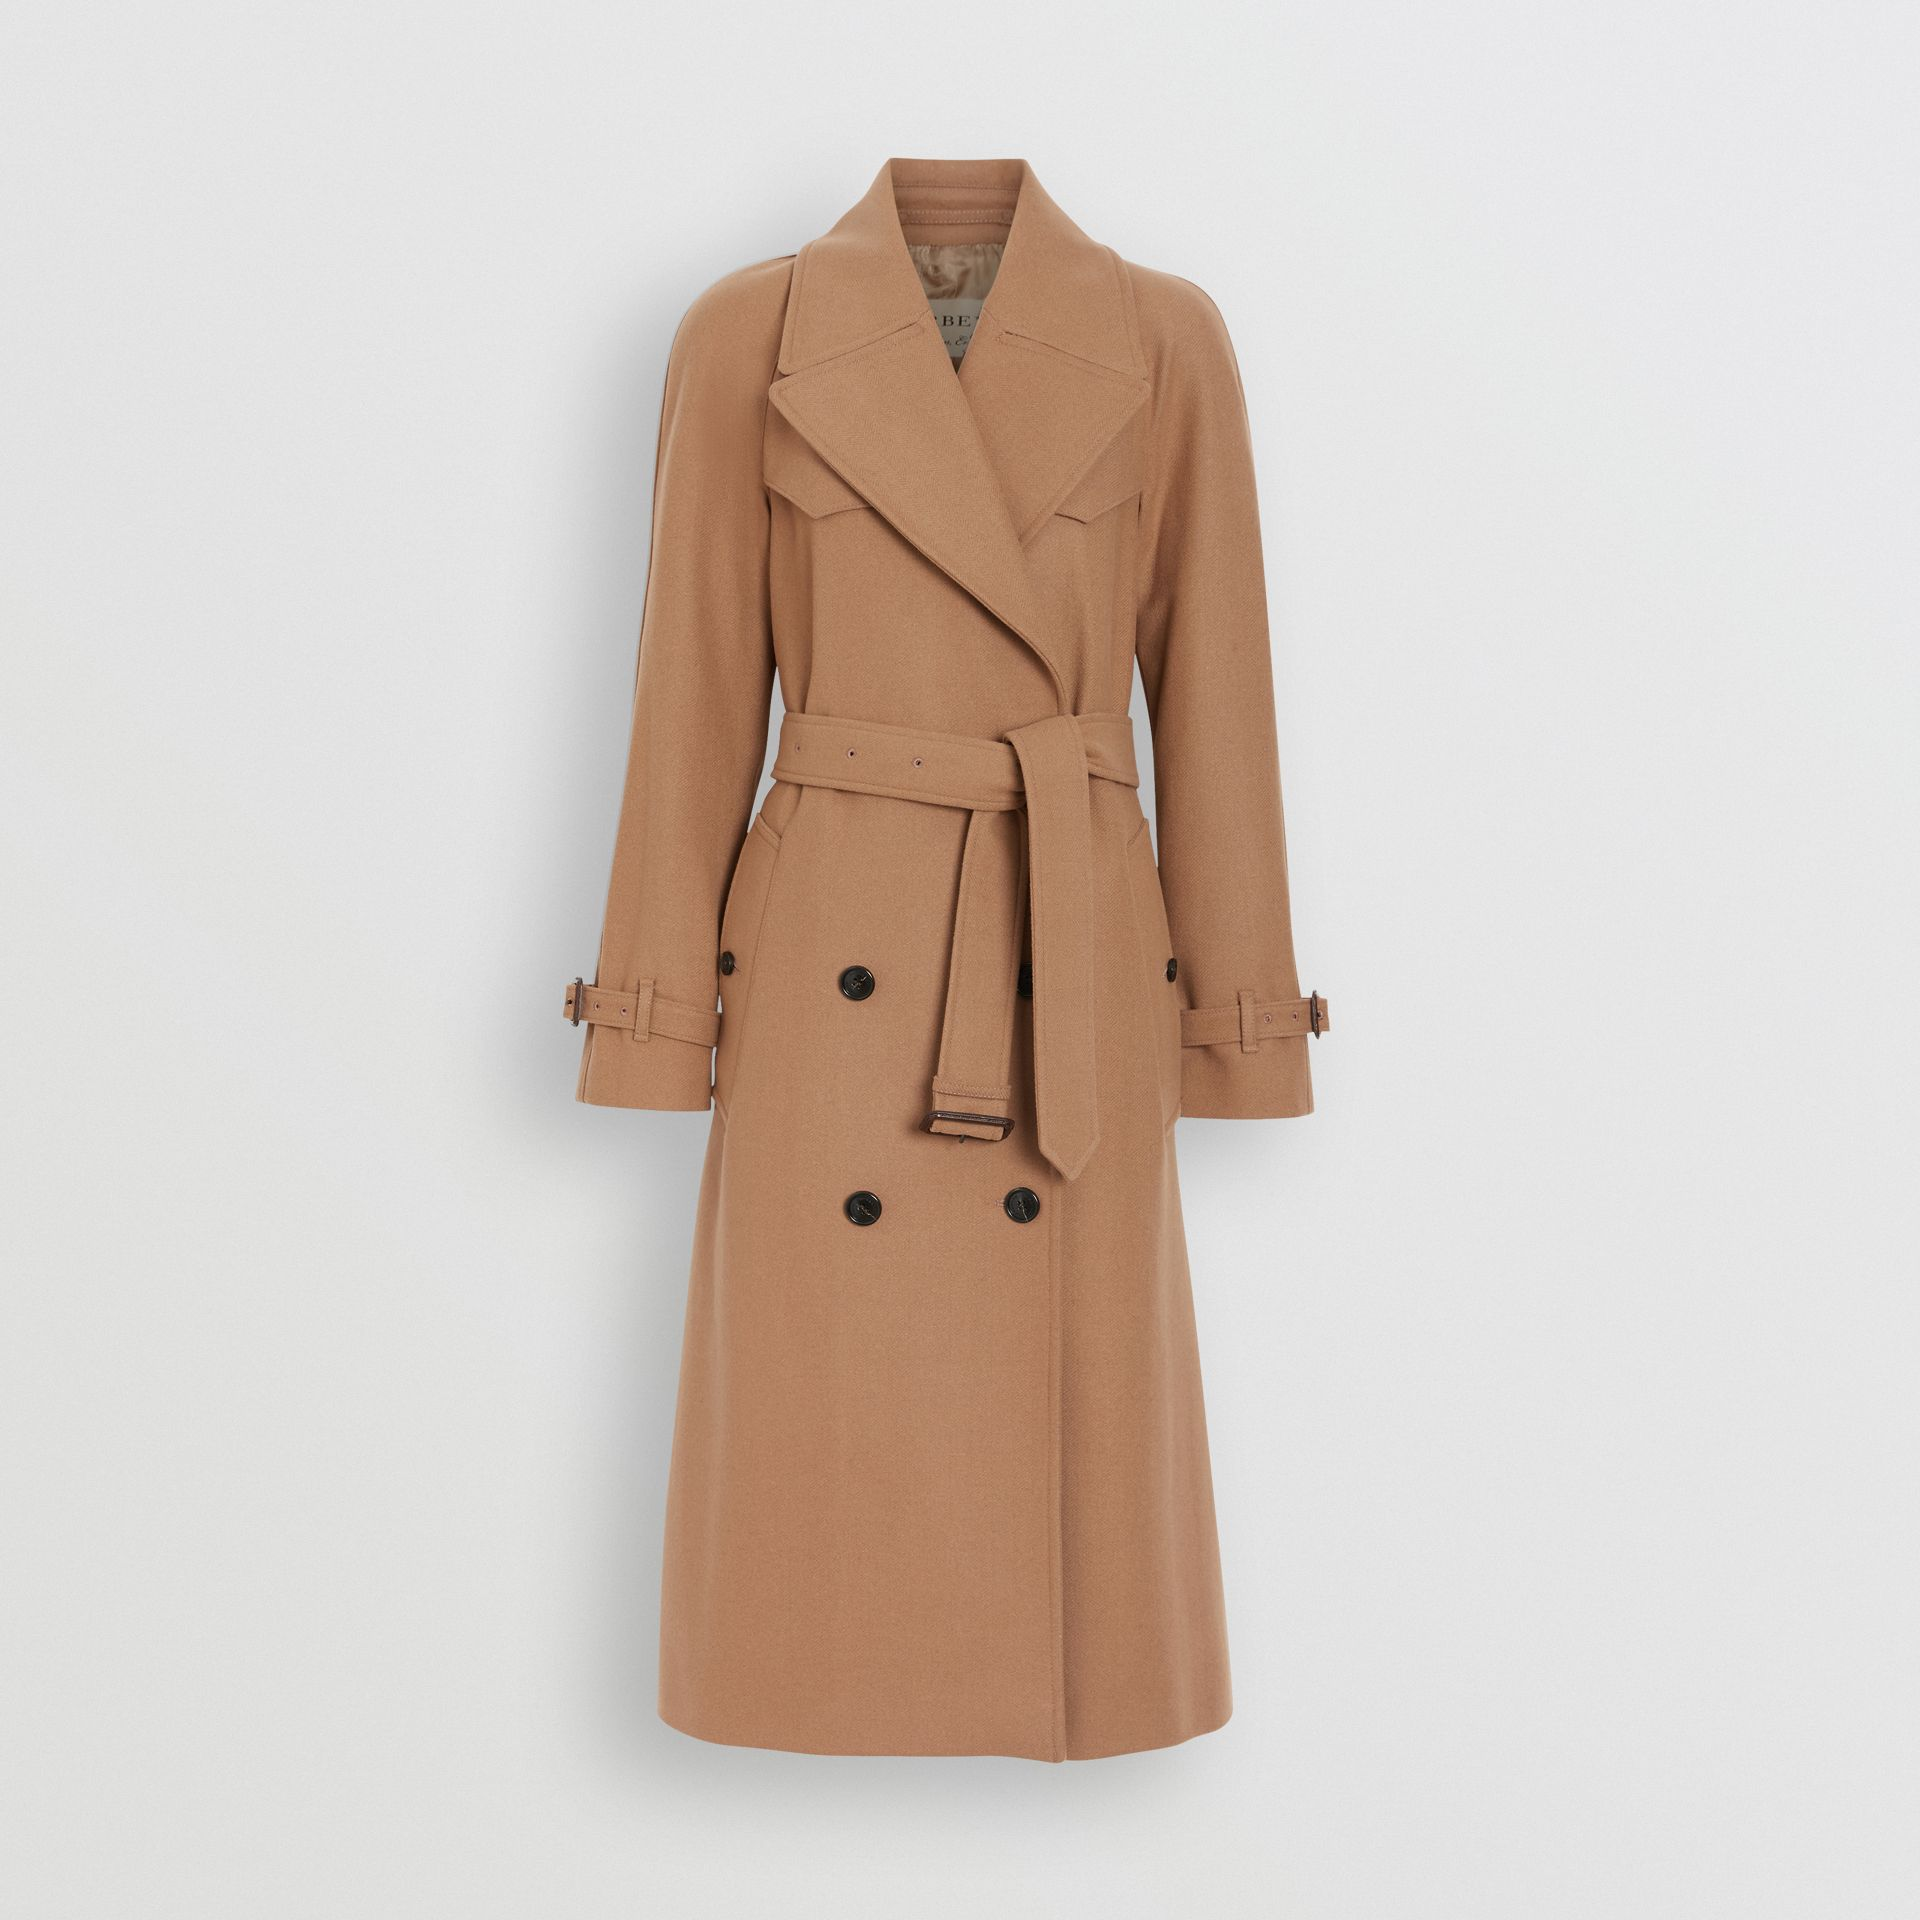 Herringbone Wool Cashmere Blend Trench Coat in Camel - Women | Burberry Singapore - gallery image 3